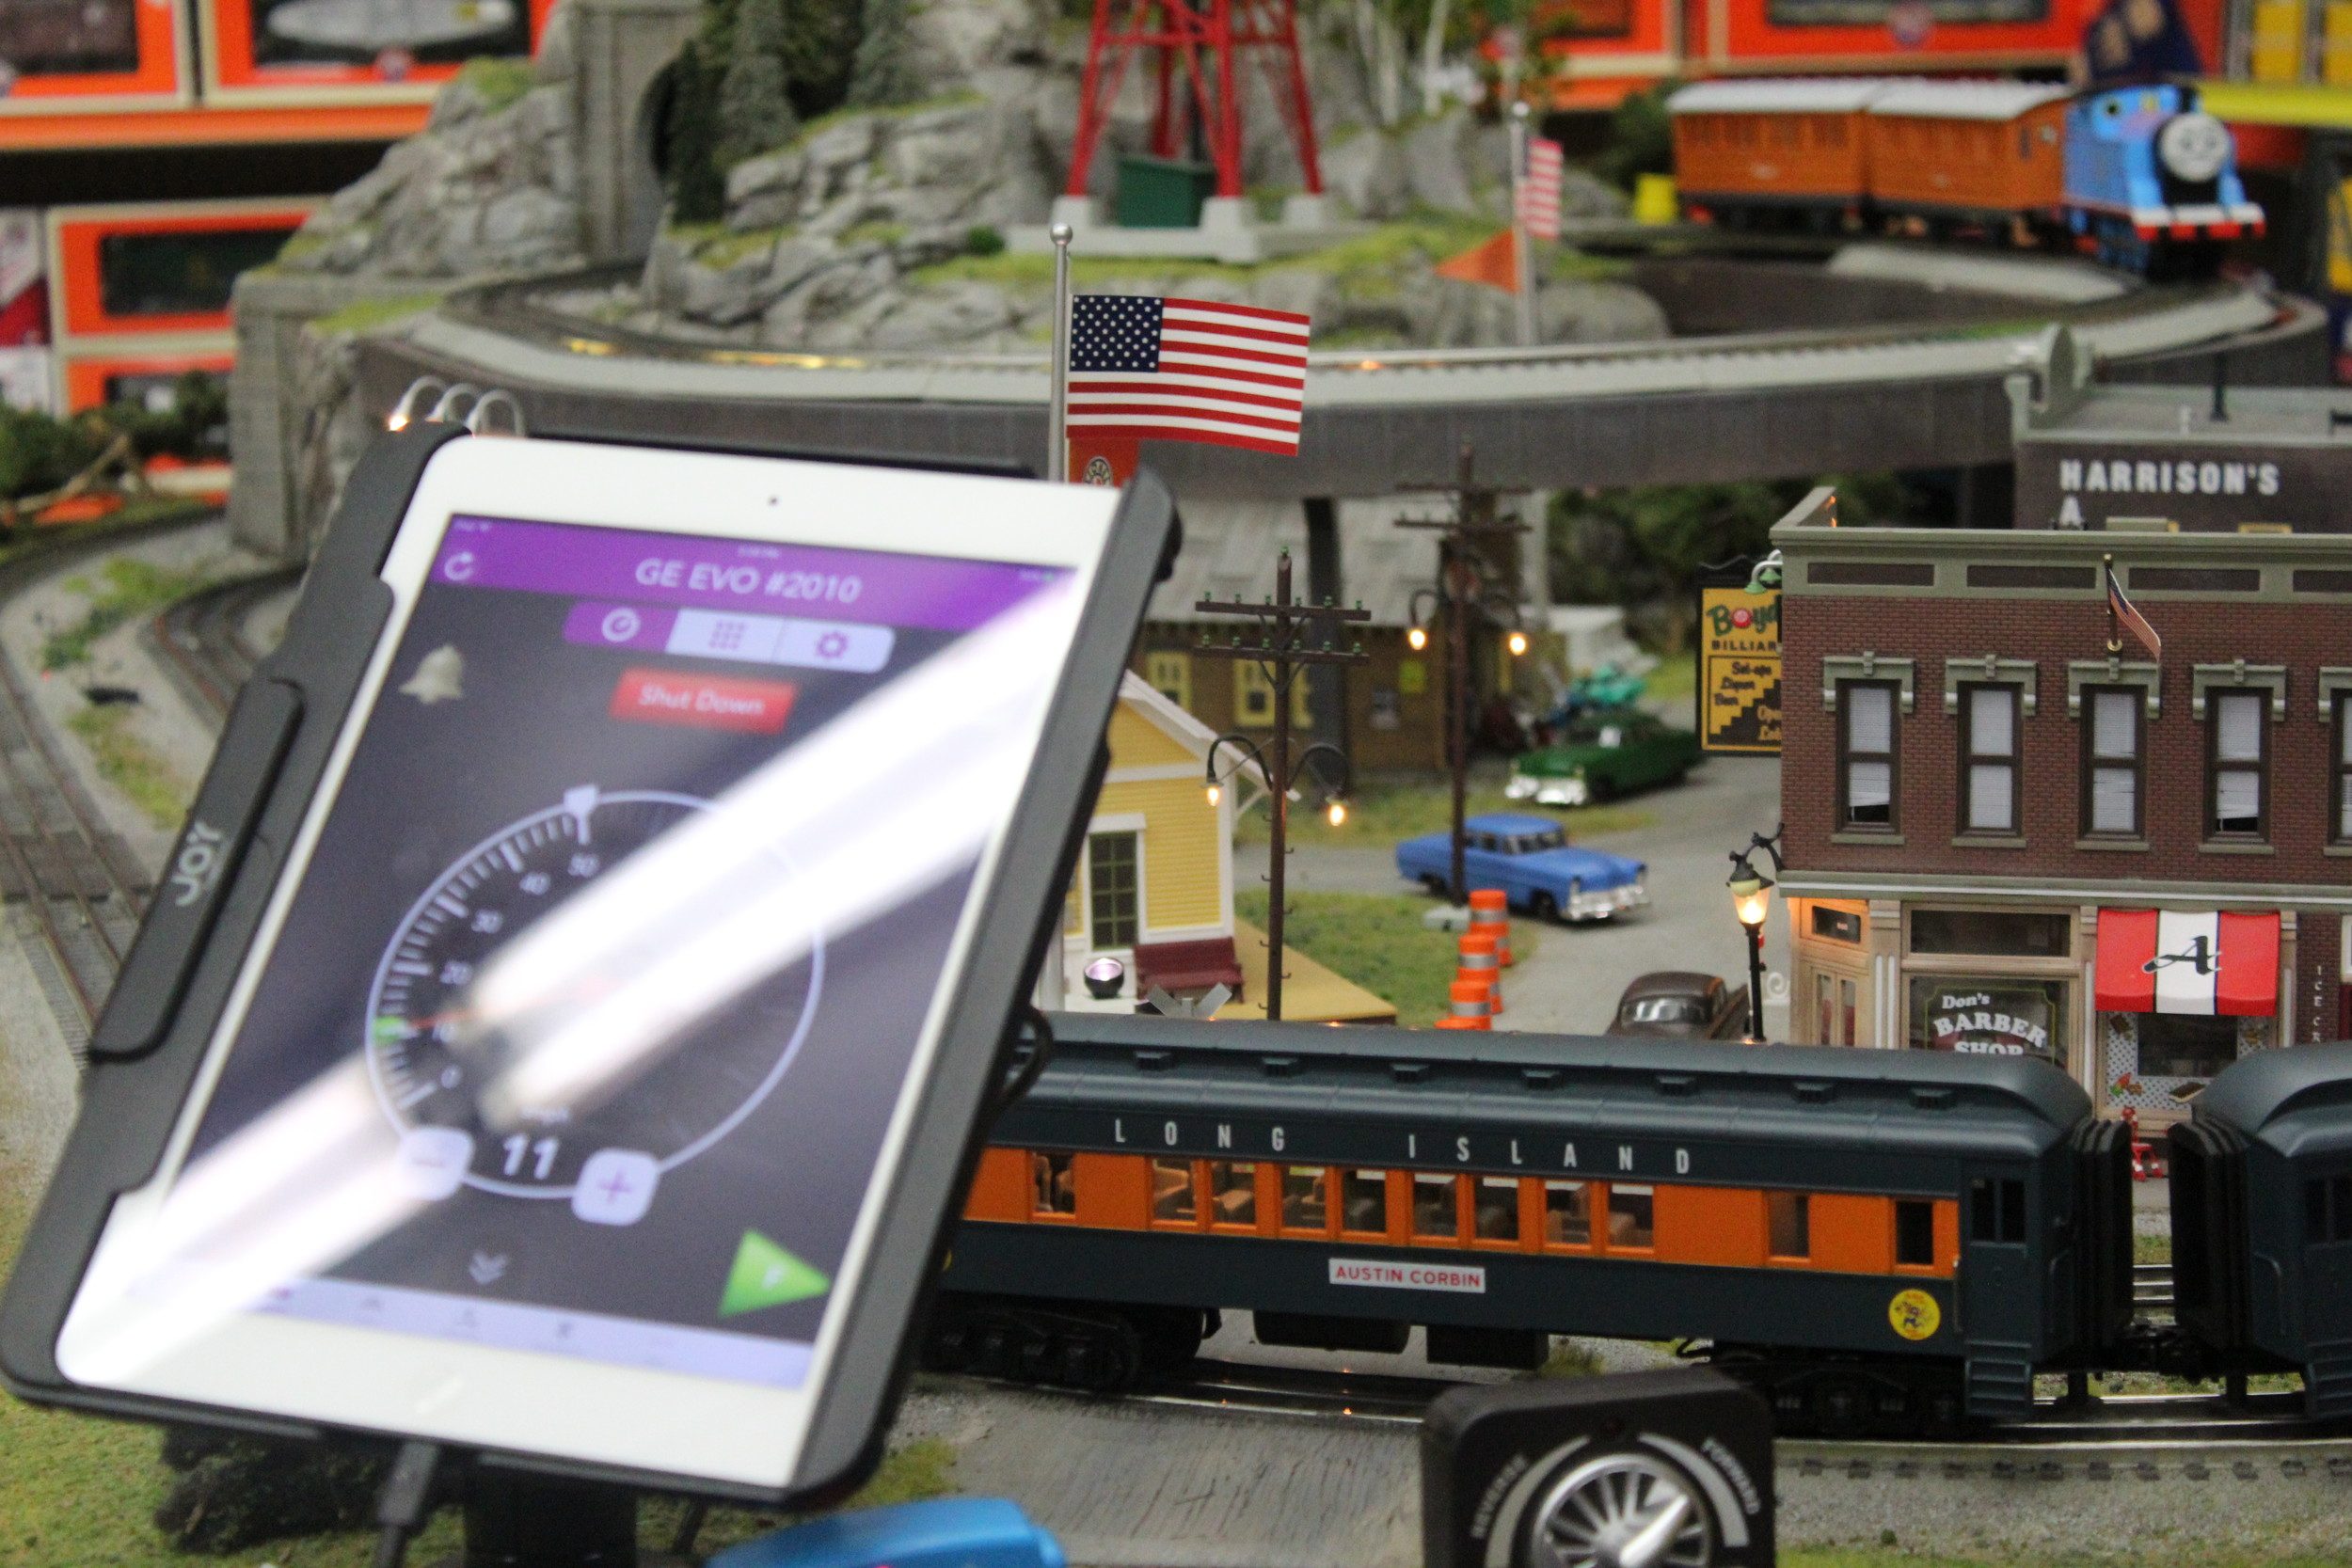 Newer train sets can be controlled by apps on tablets.